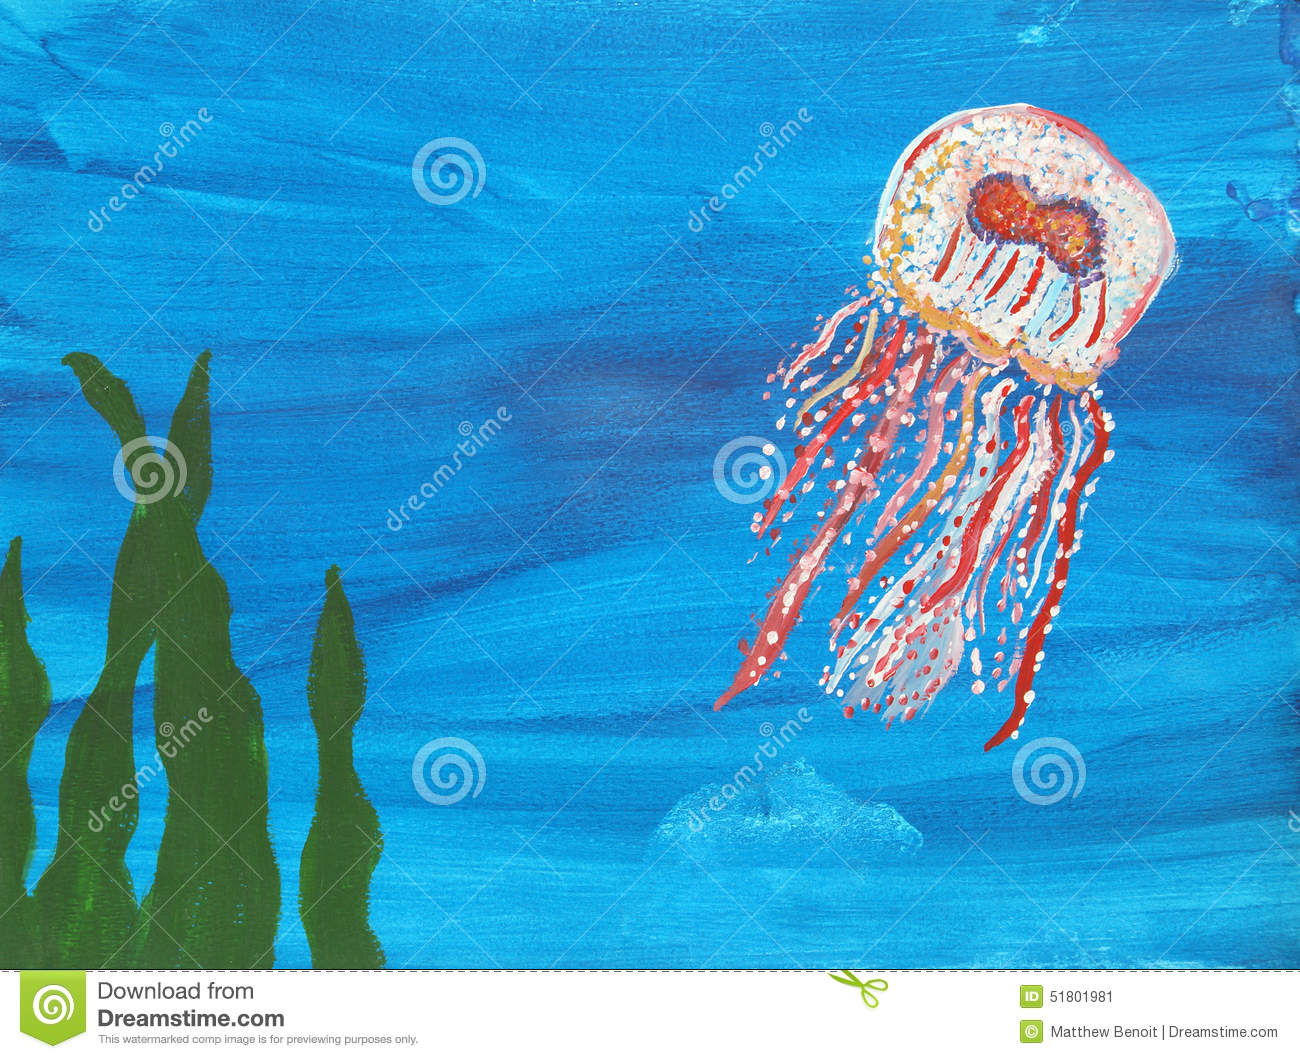 Jellyfish Painting Stock Illustration Image 51801981